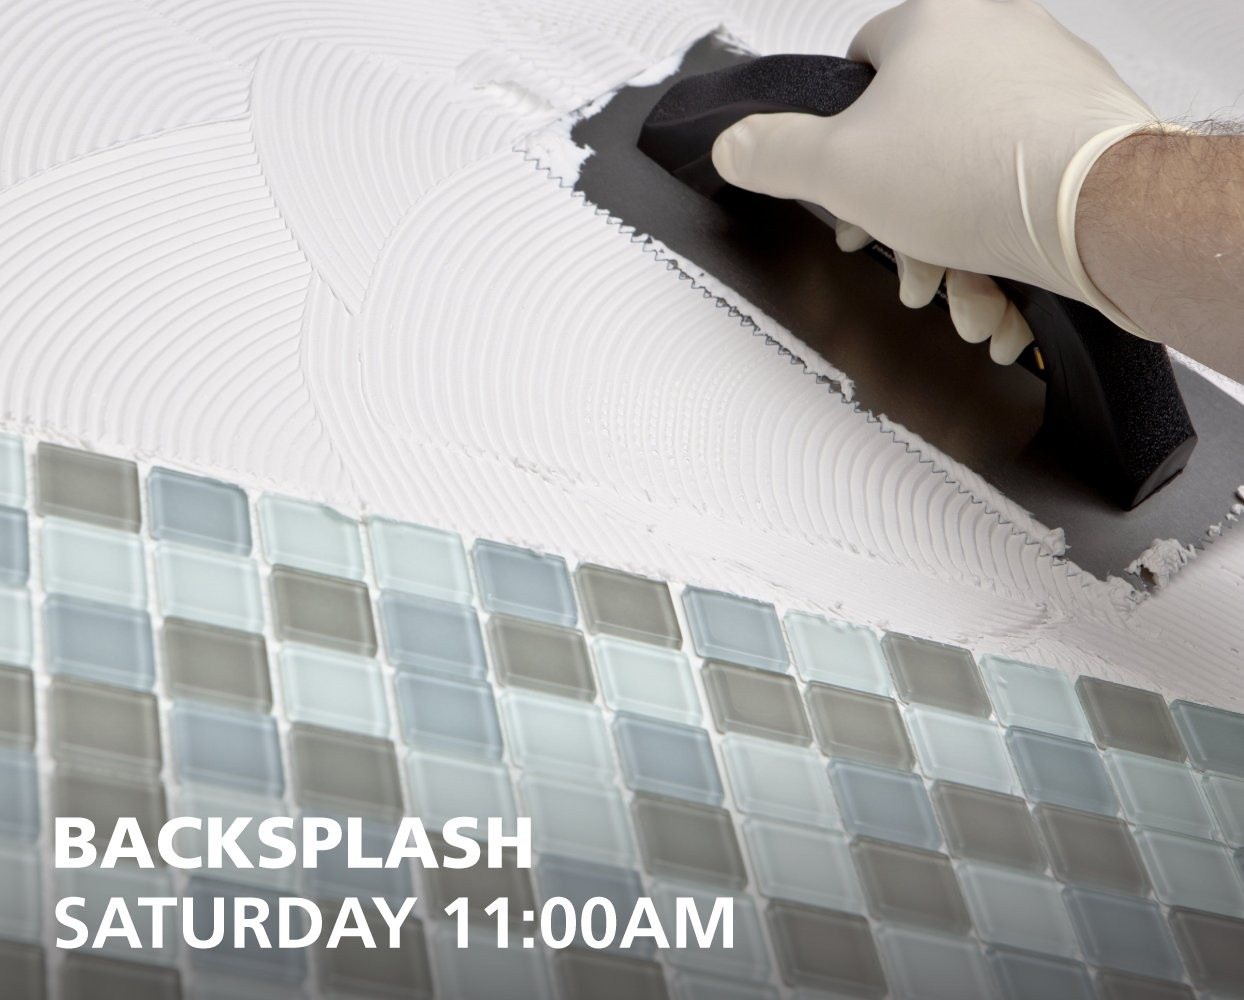 Backsplash How To classes - Saturdays at 11:00am